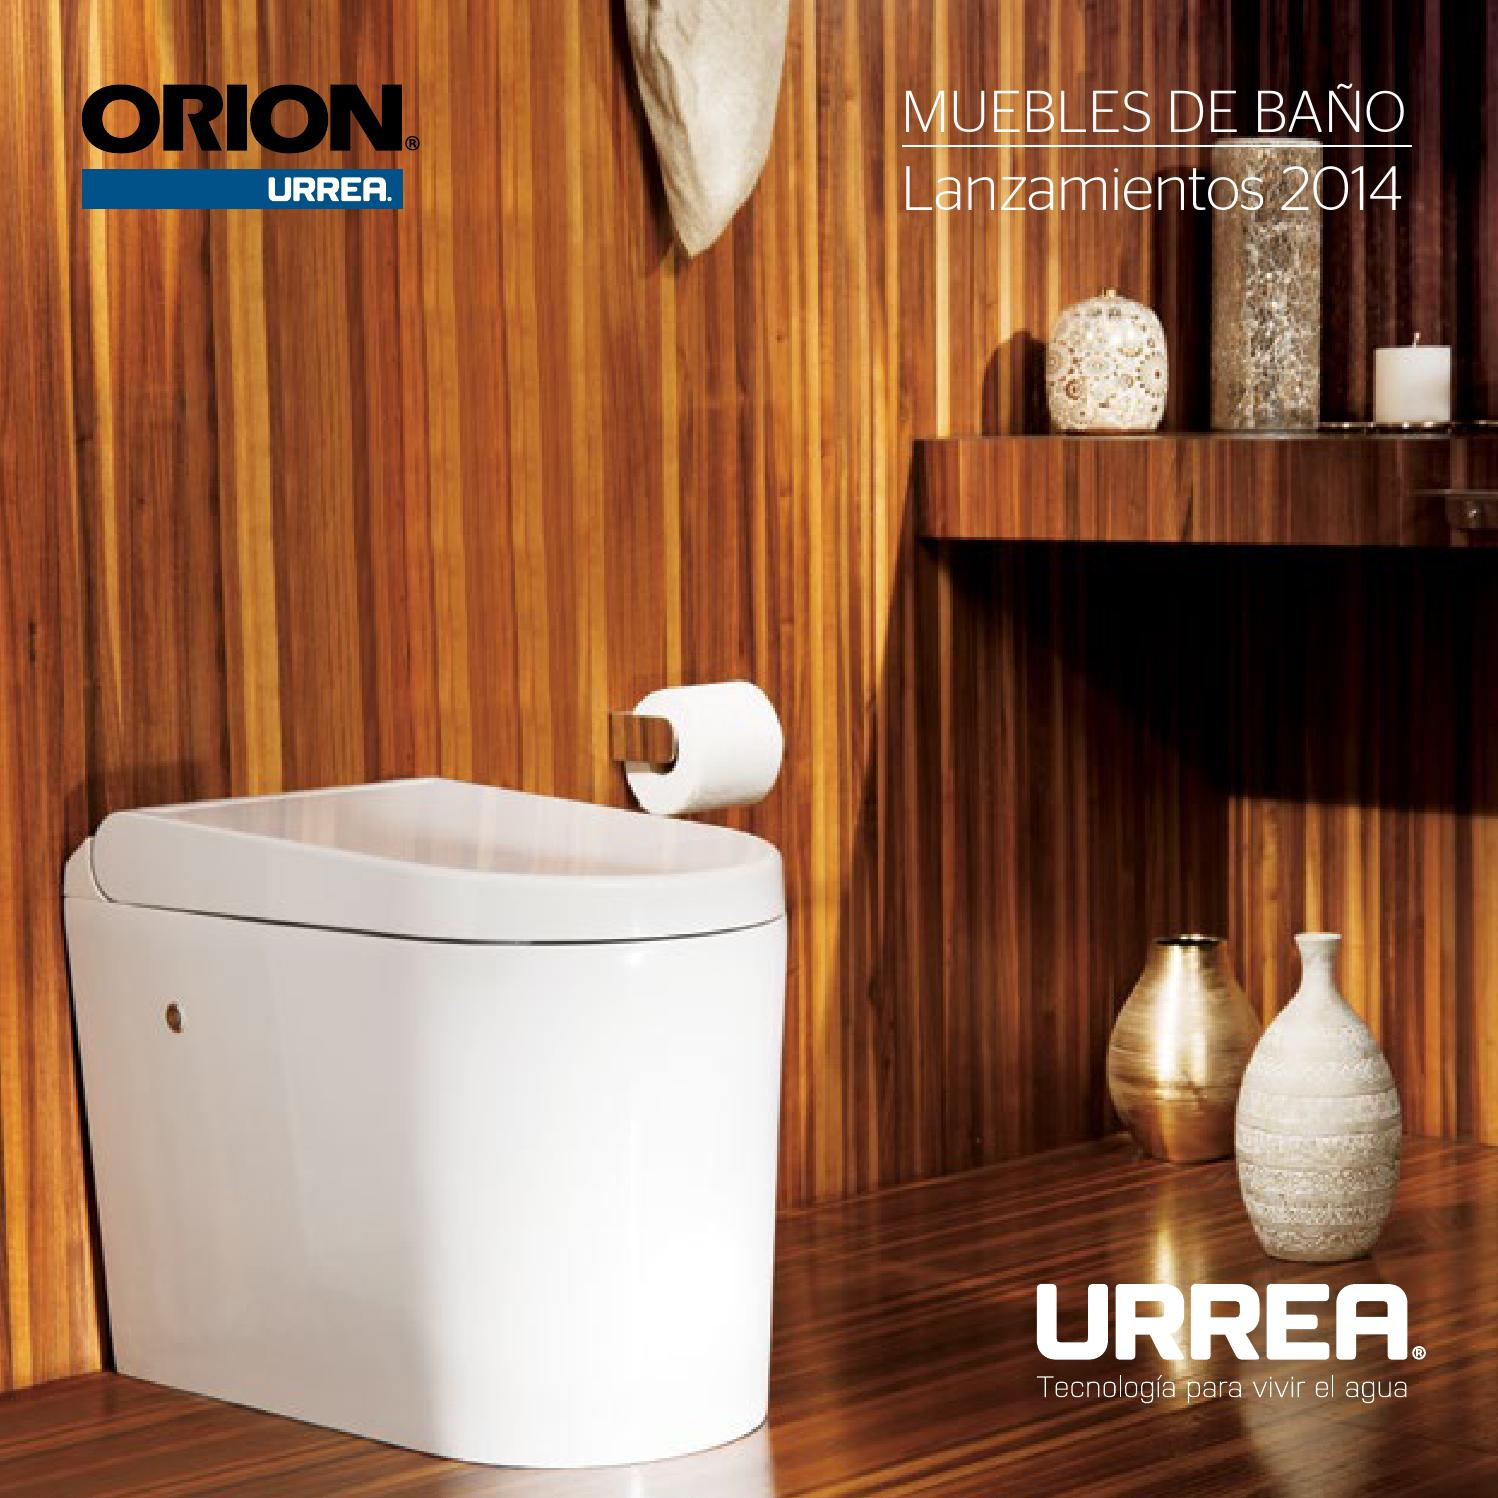 Muebles de ba o by urrea m xico issuu for Urrea llaves para bano